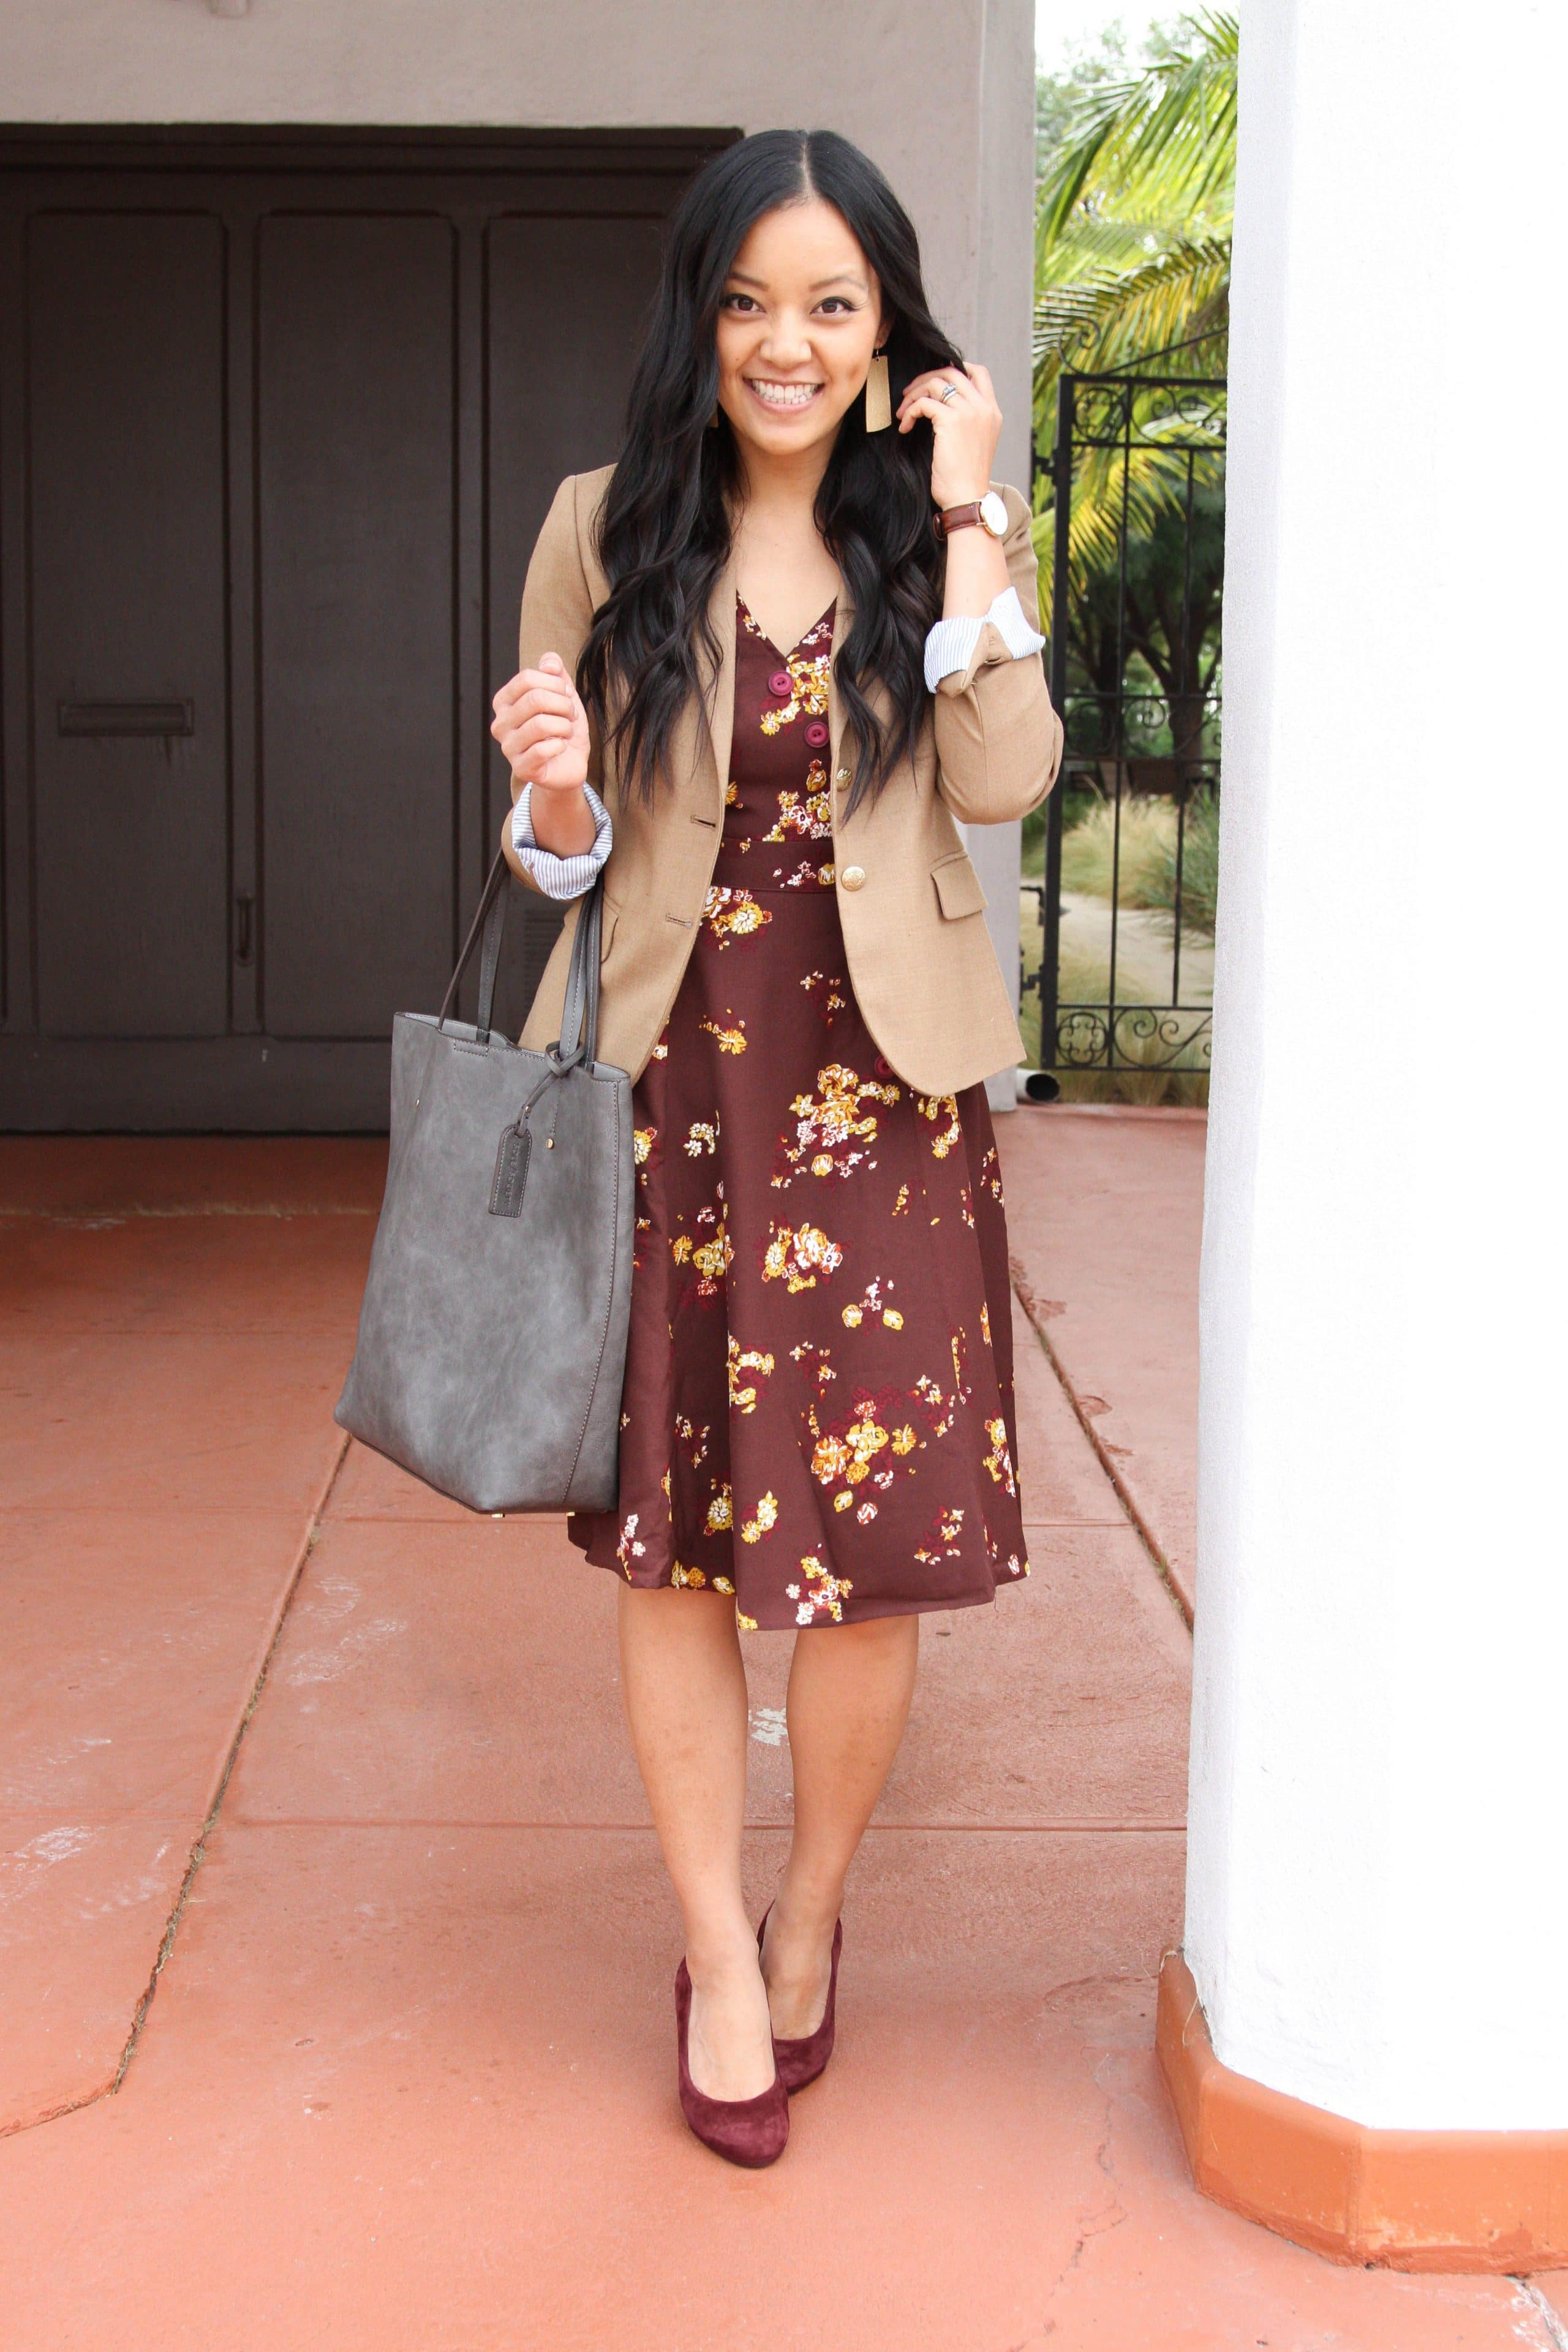 Maroon Floral Dress + Camel Blazer + Heels + Tote + Gold Earrings